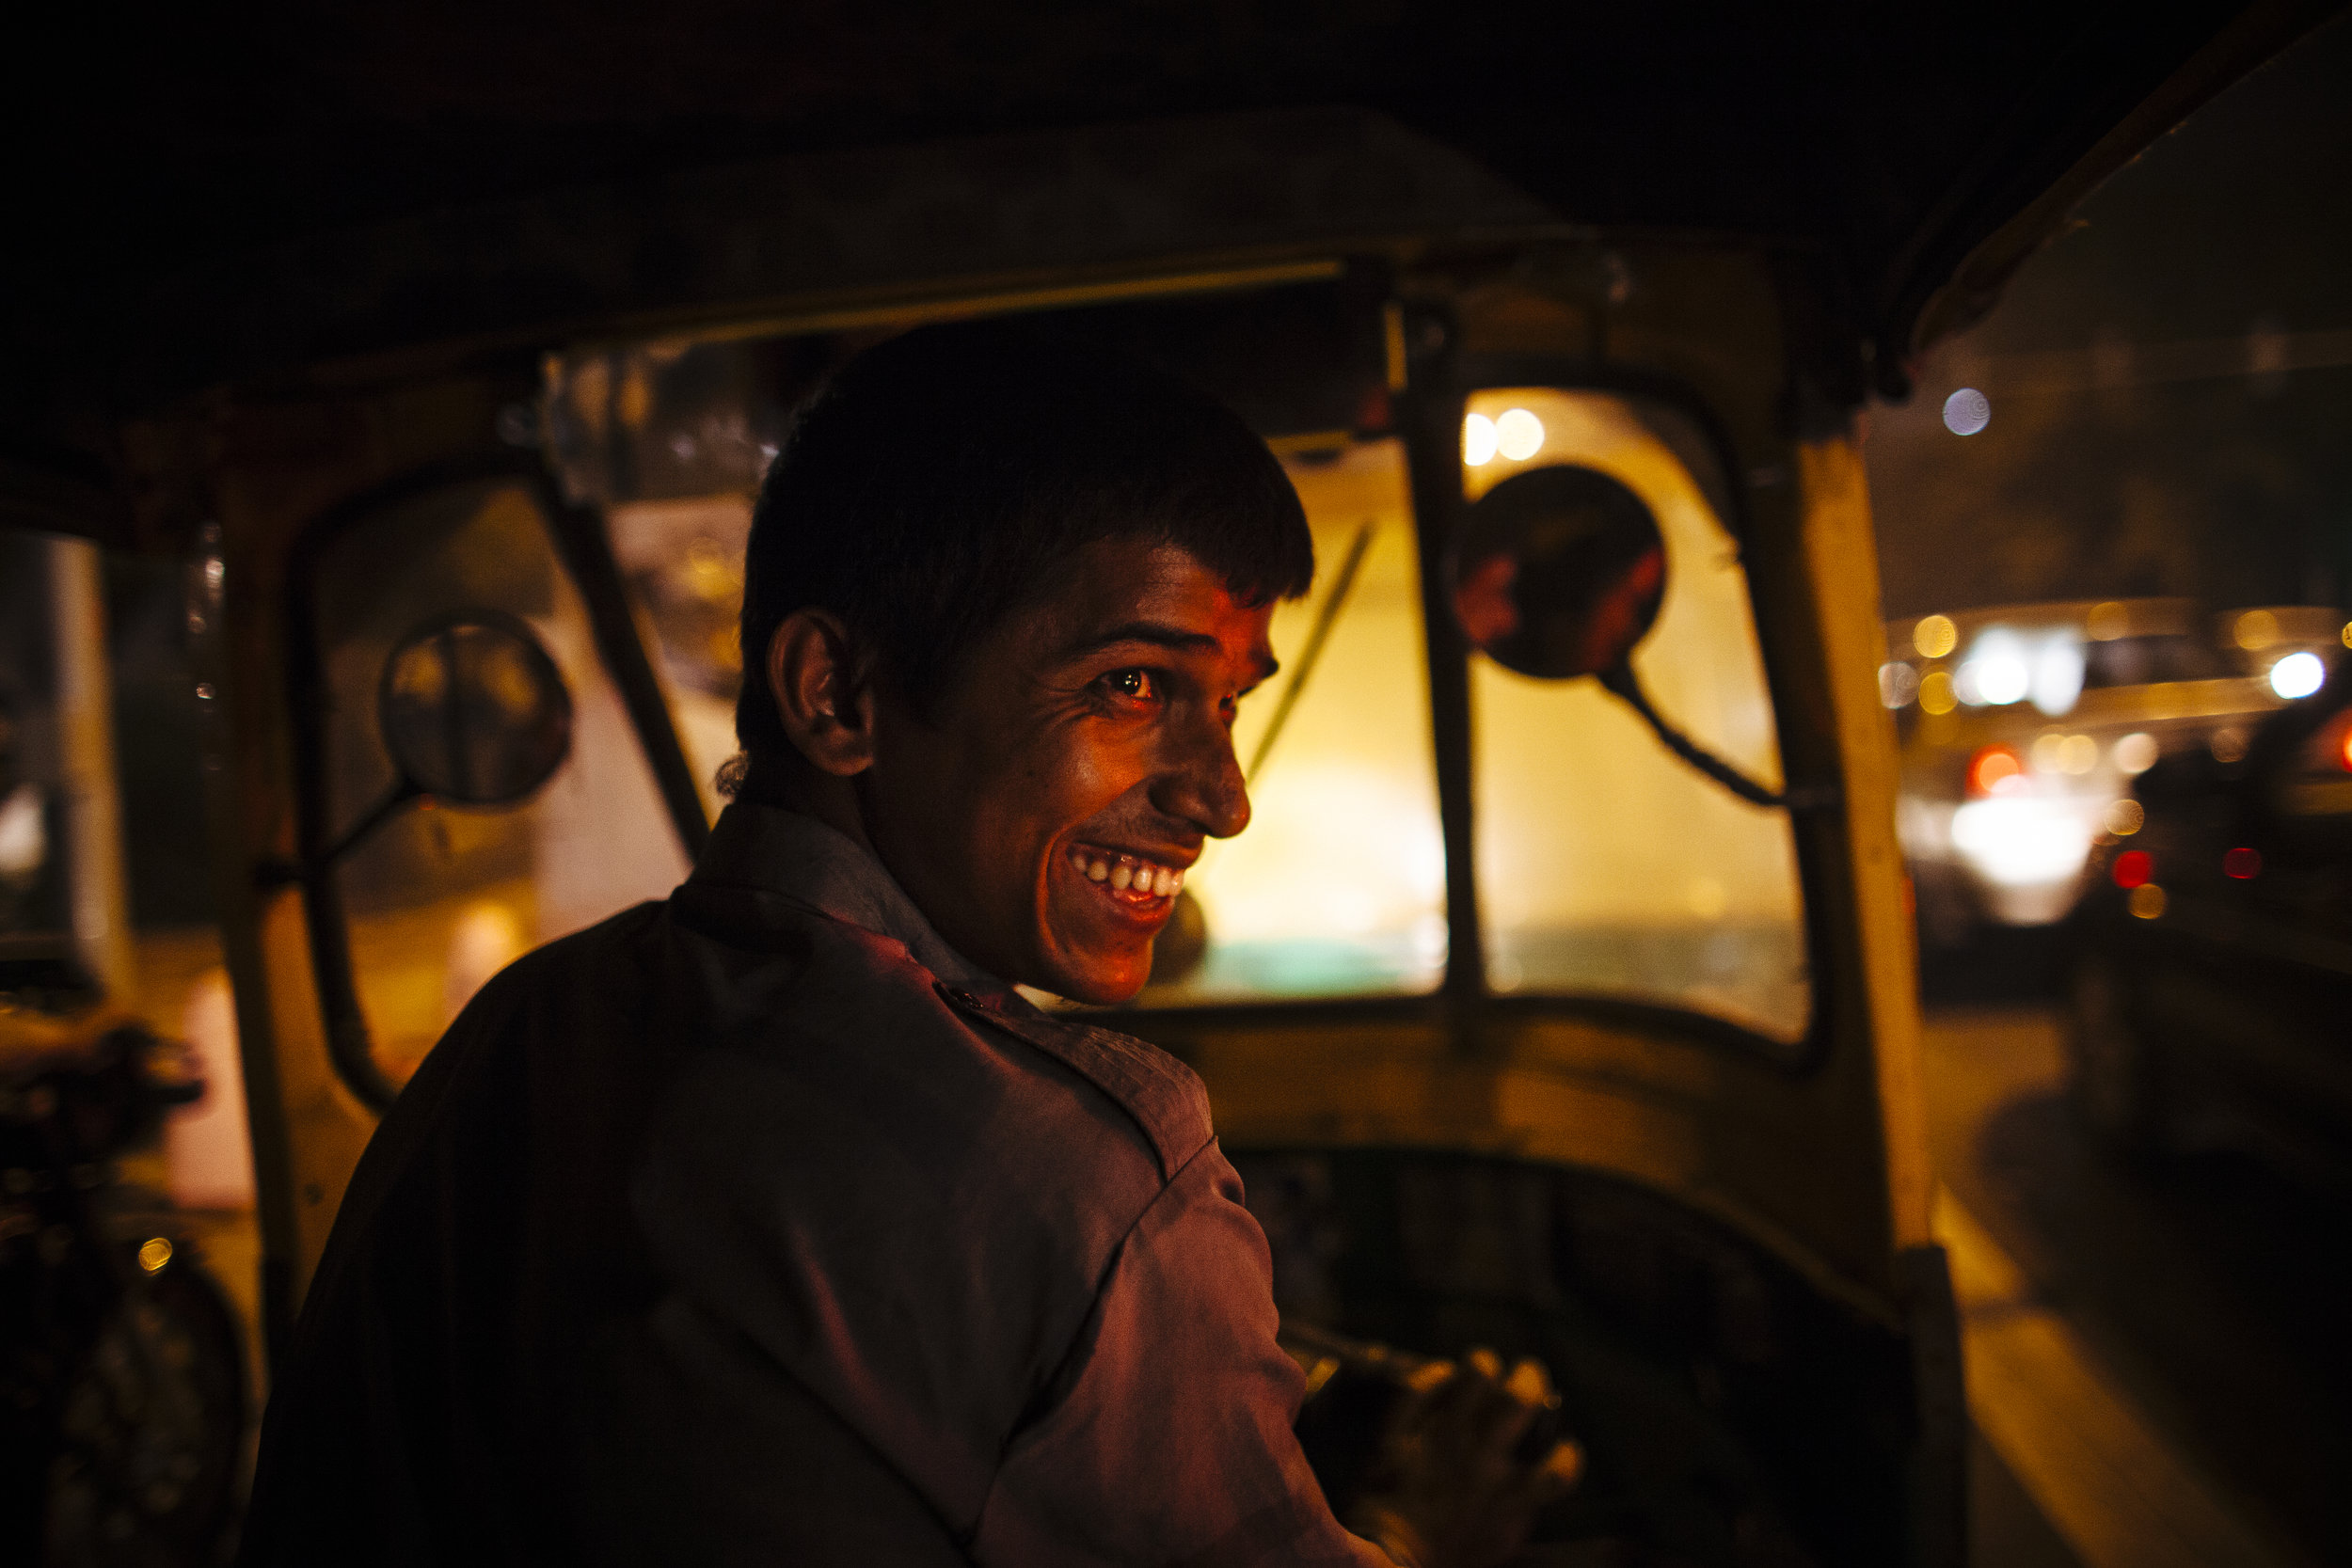 An auto-rickshaw drive smiles as he negotiates evening traffic during the Commonwealth Games in New Delhi, India, Wednesday, Oct. 6, 2010.